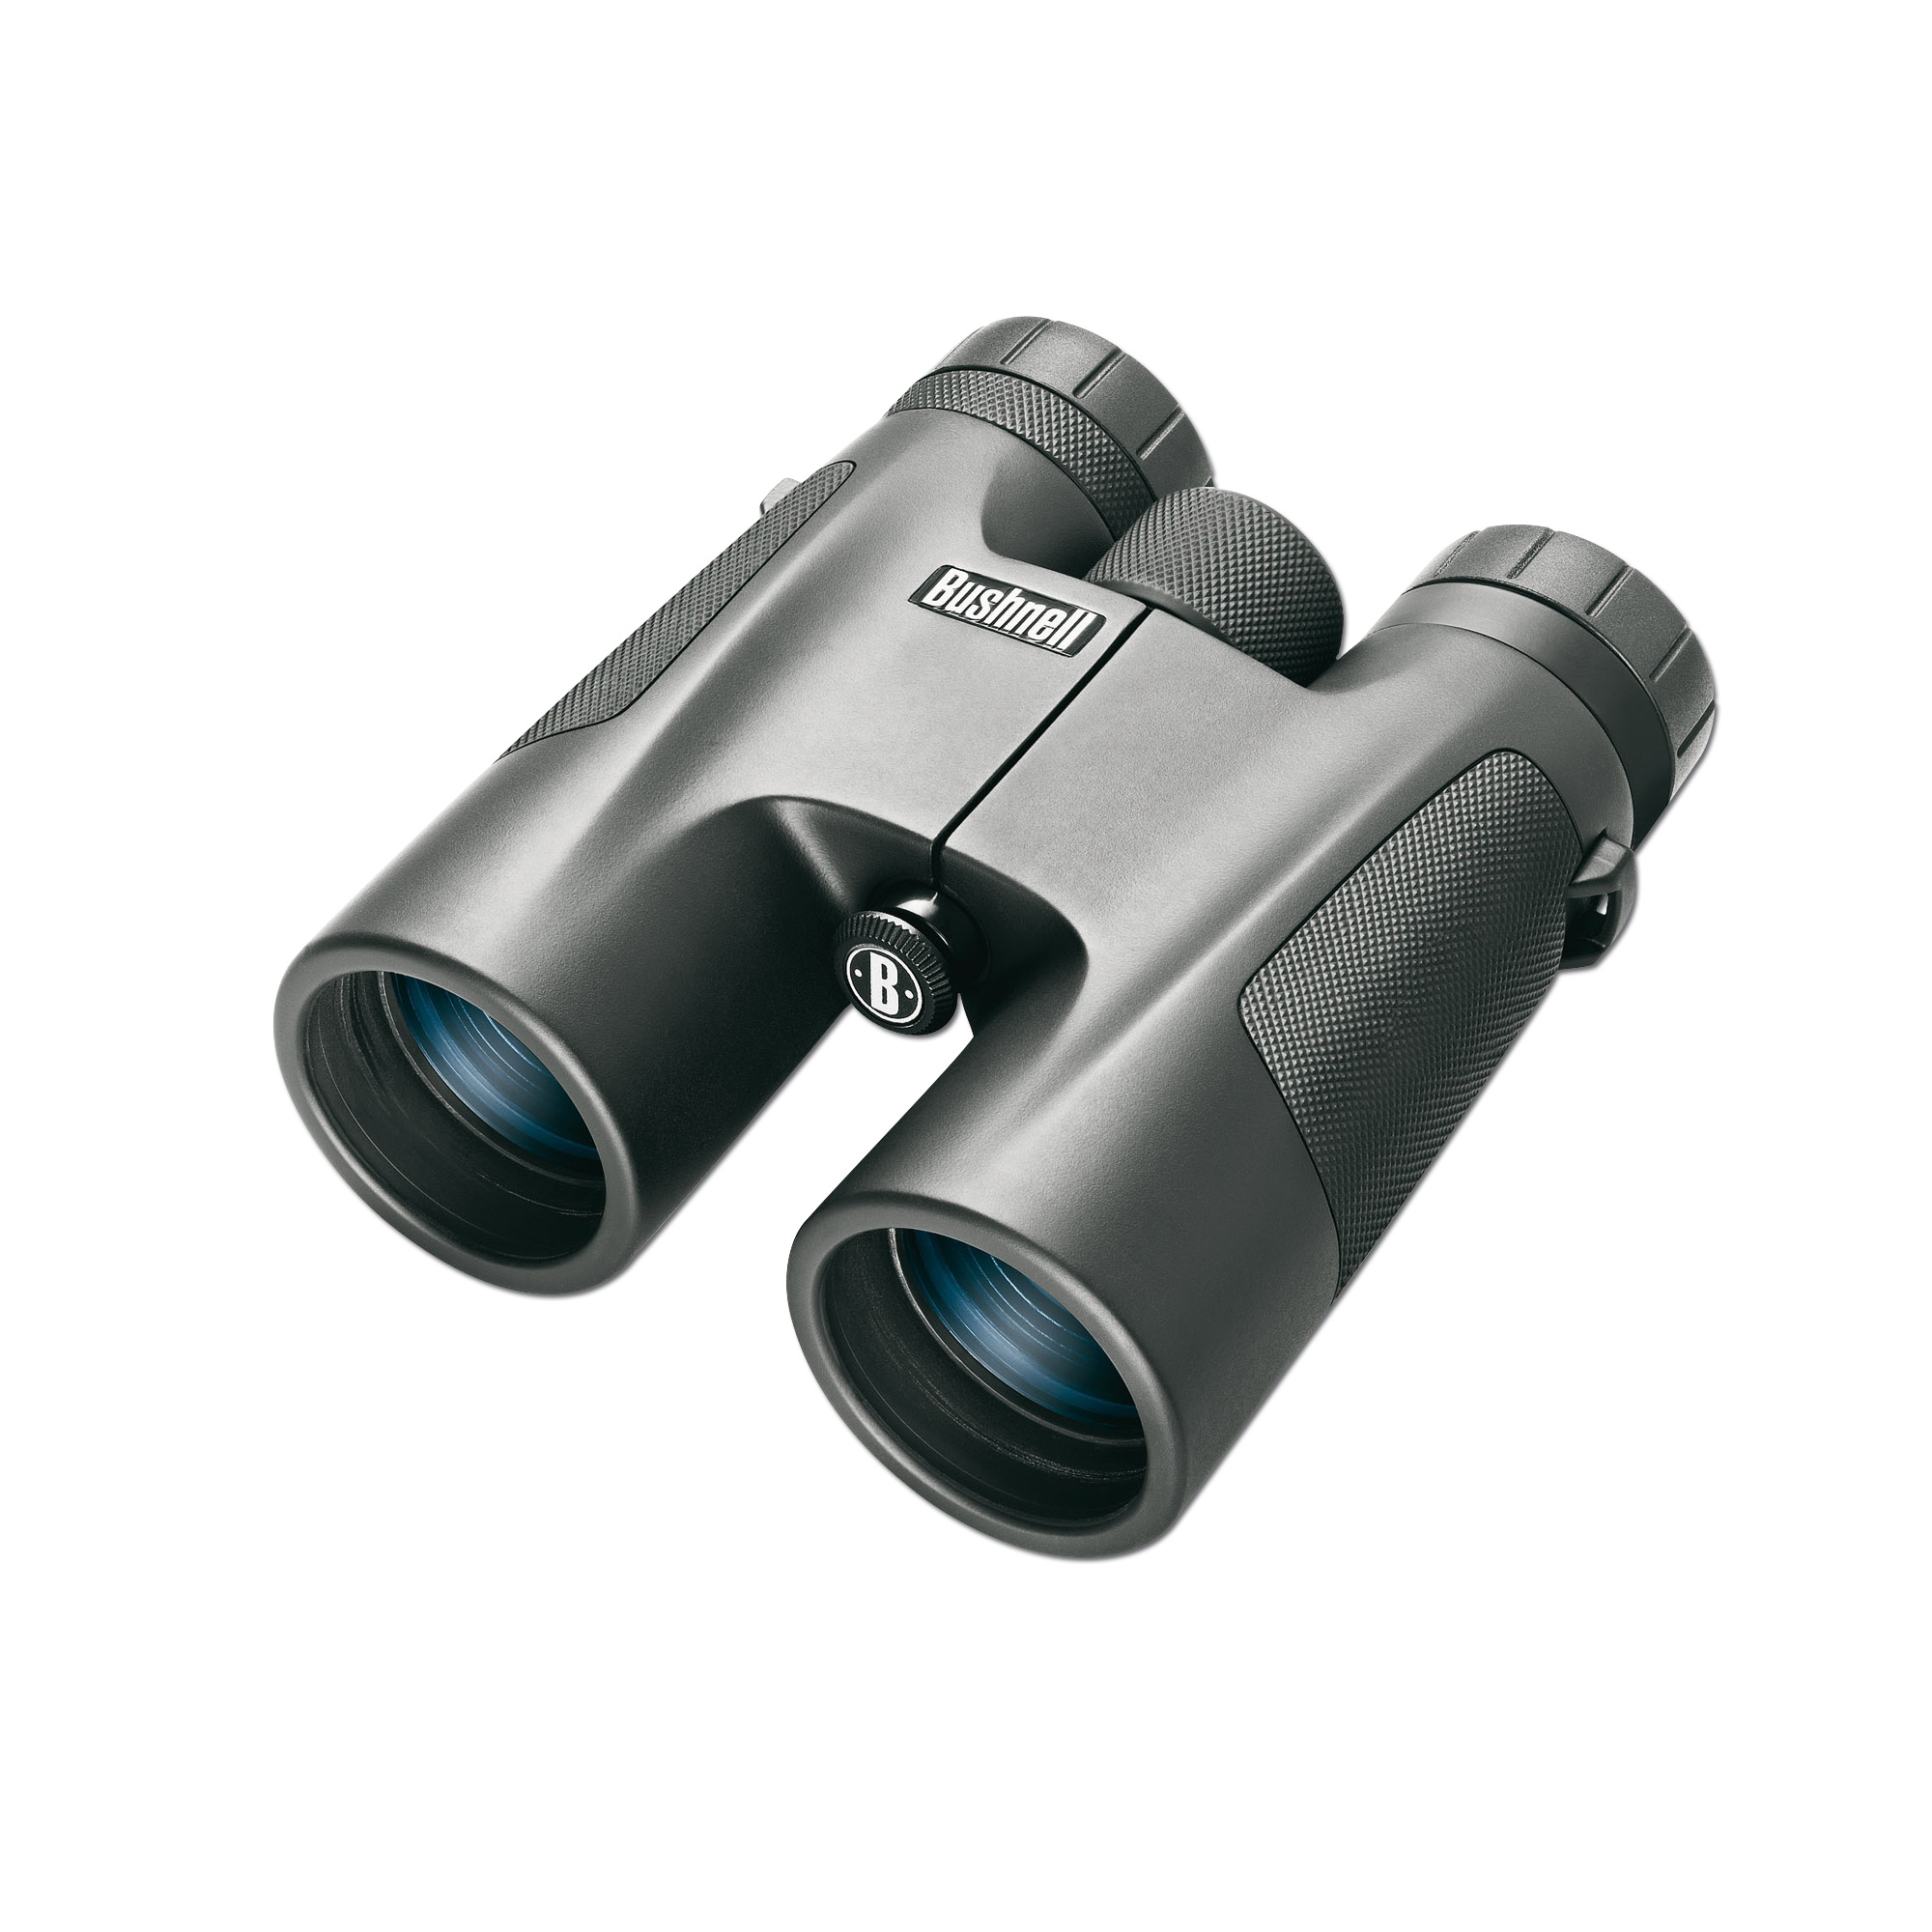 Fernglas Bushnell Powerview 8x42